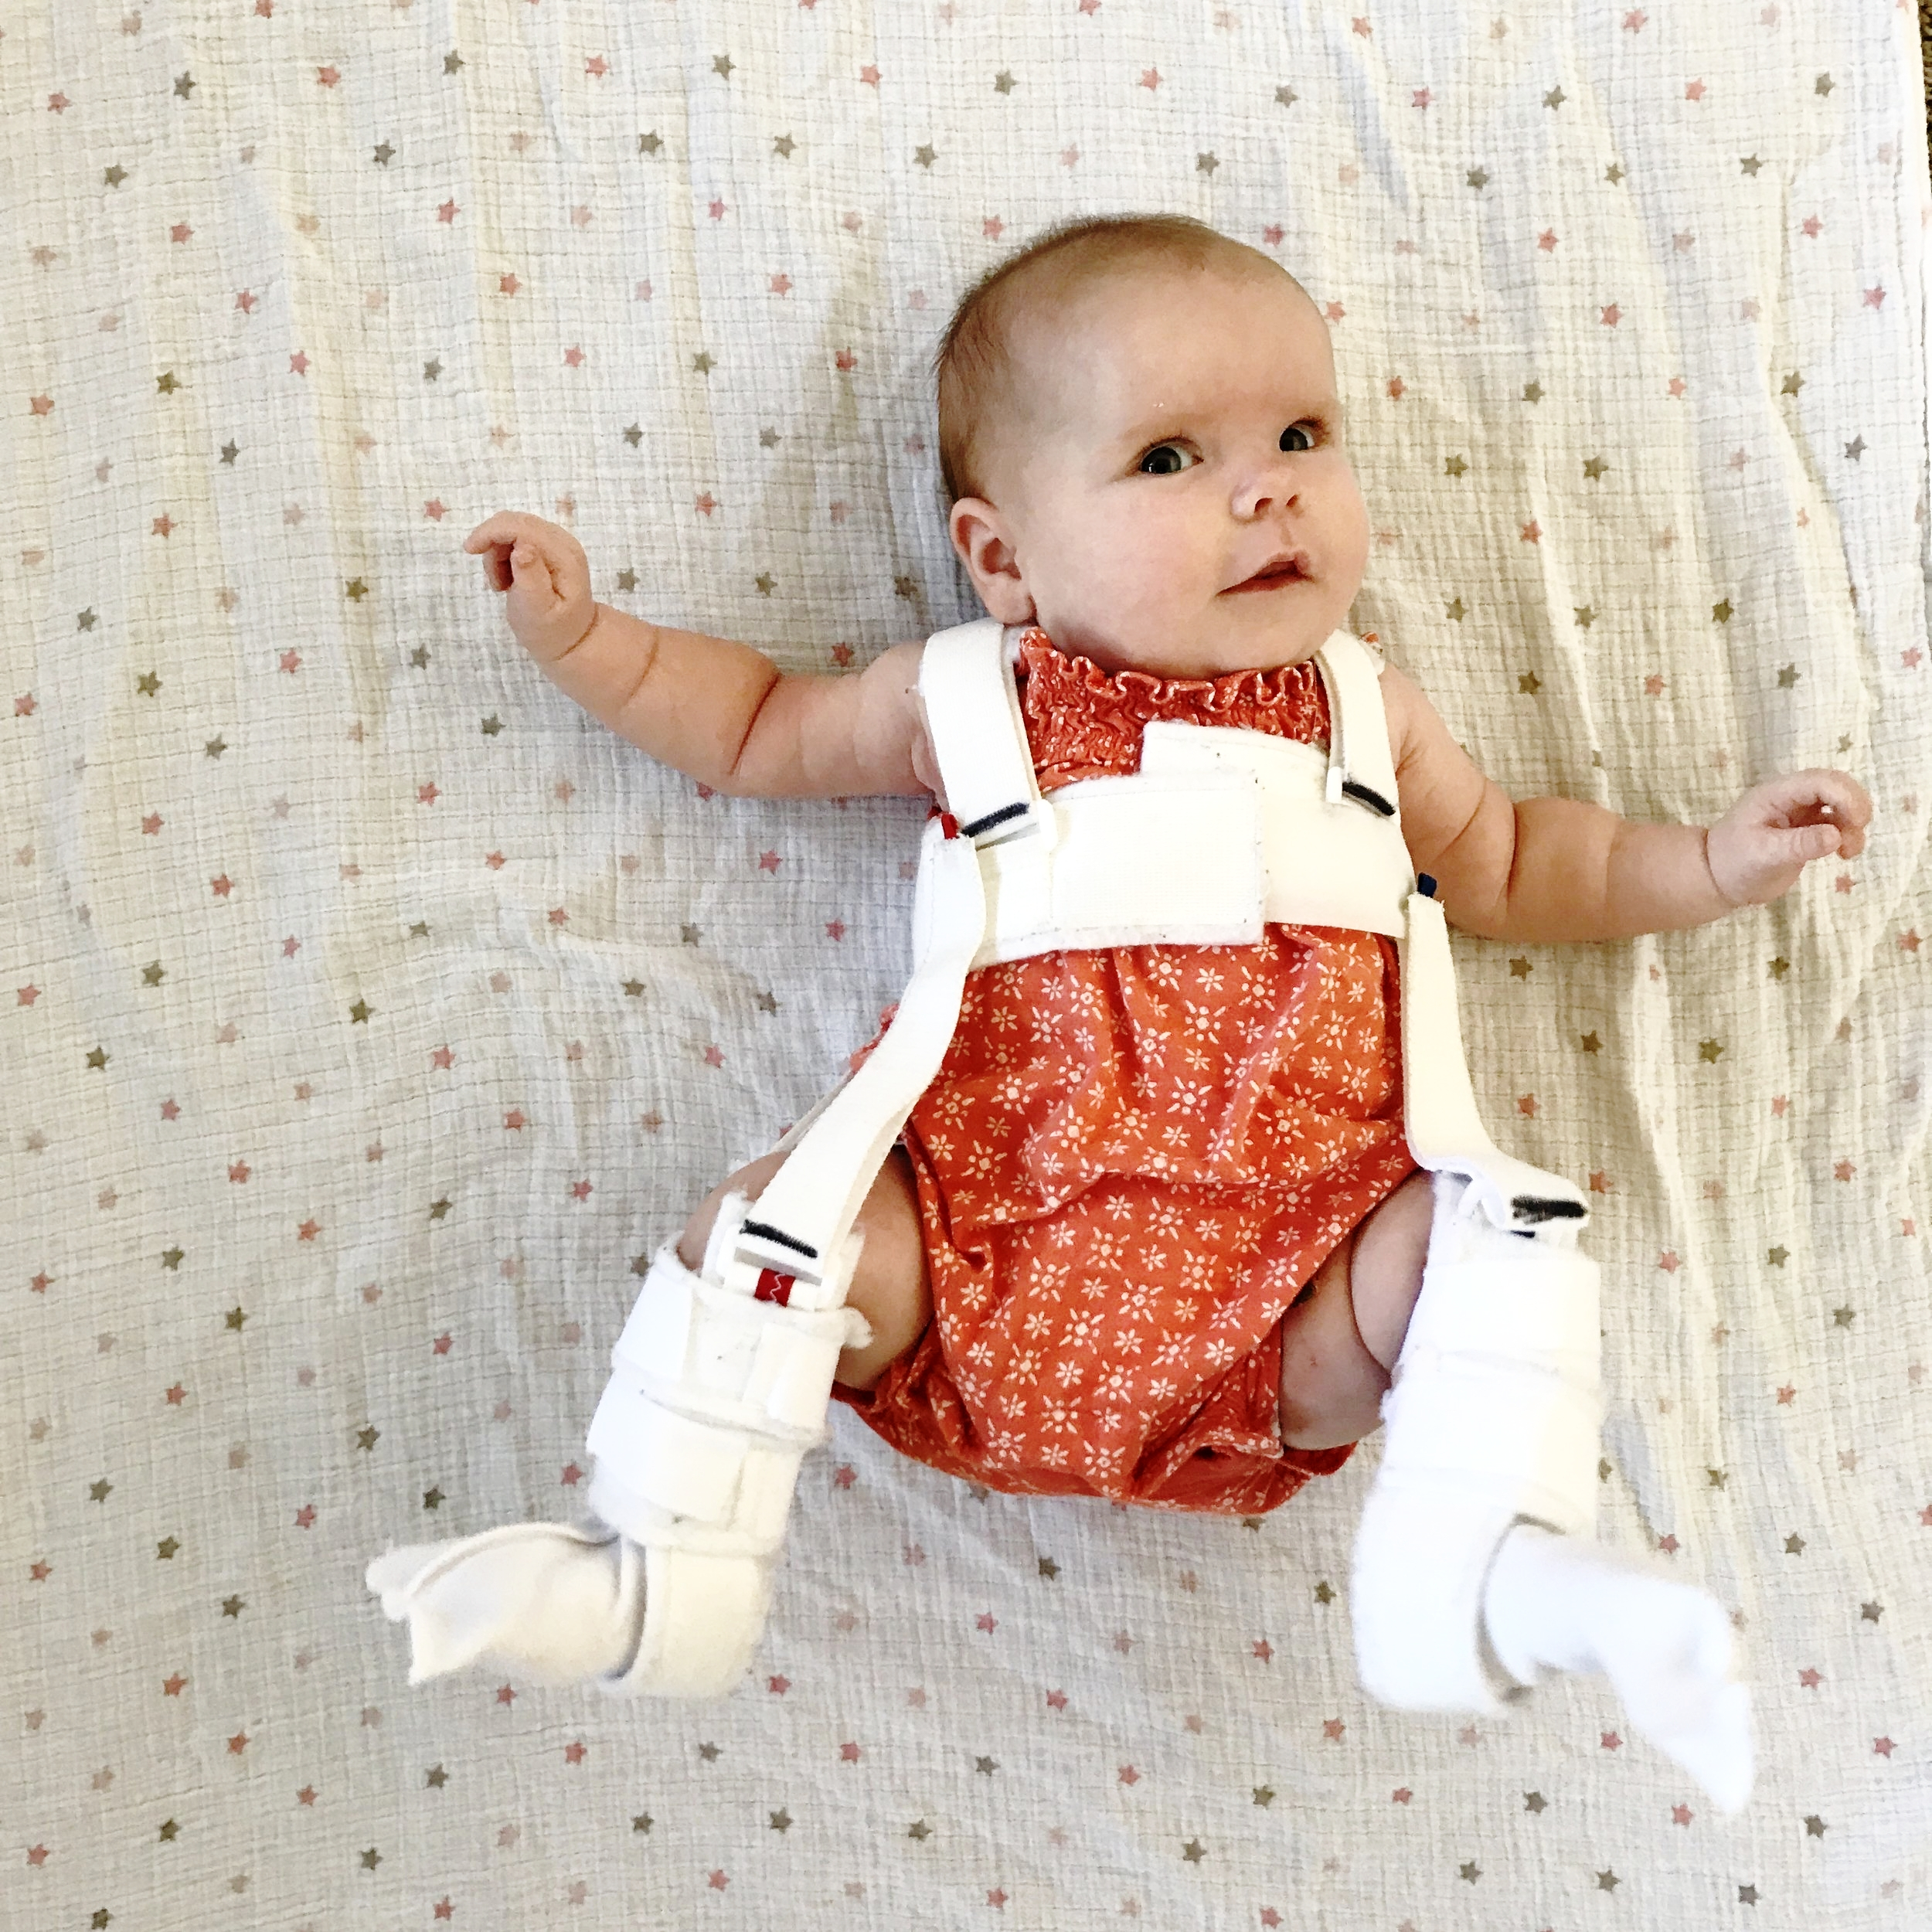 Two months old and in her pavlik harness to correct the hip dysplasia.